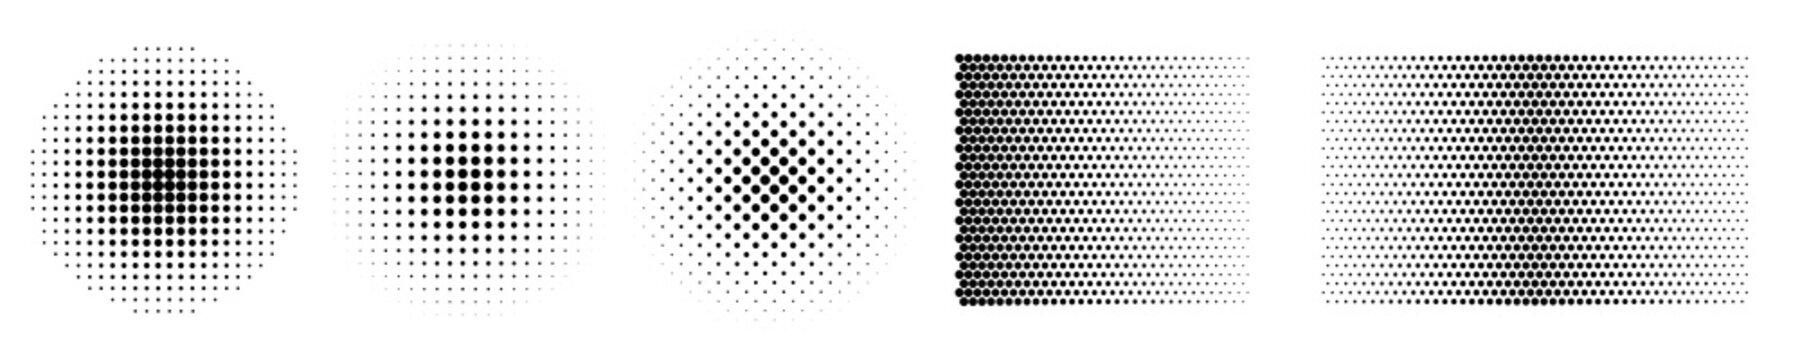 Set of black halftone dots backgrounds. Popart background with black dots – stock vector